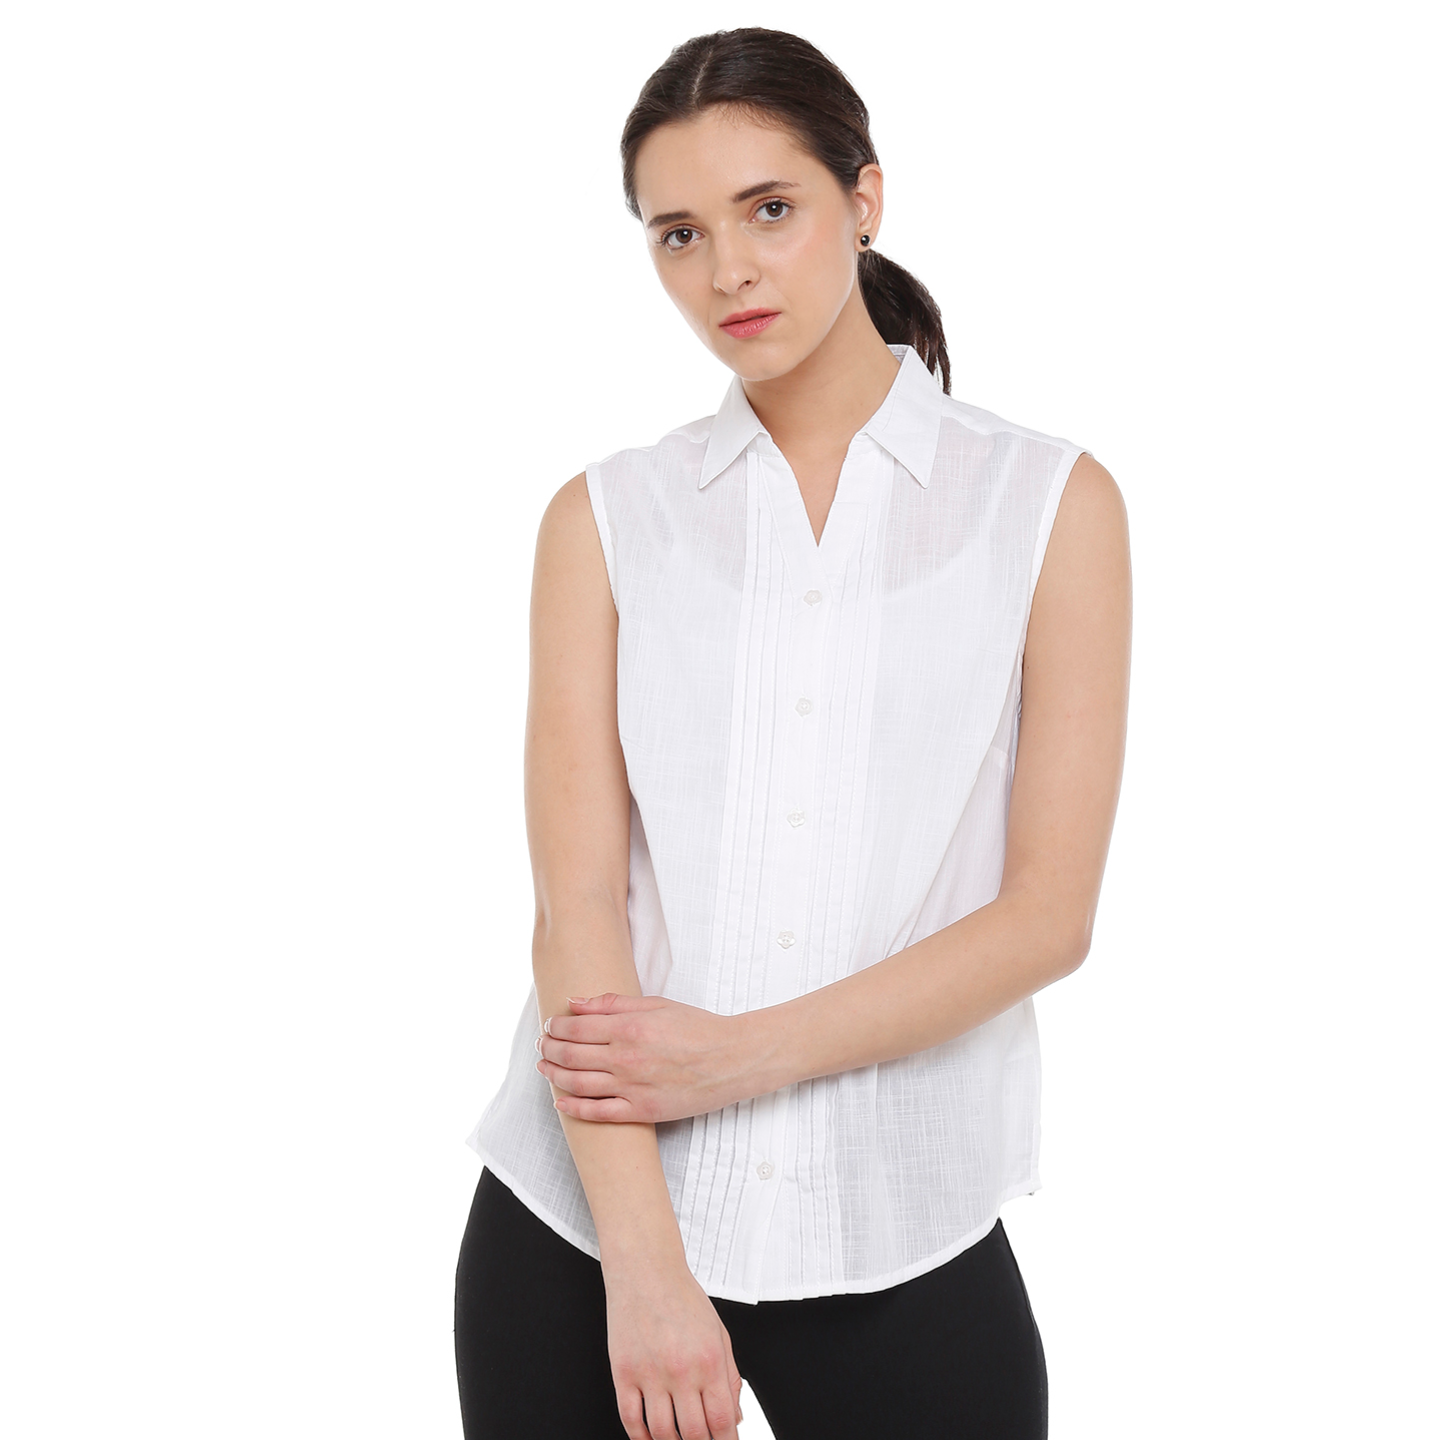 Double TWO Womens Cotton Pleated White Sleeveless Shirt